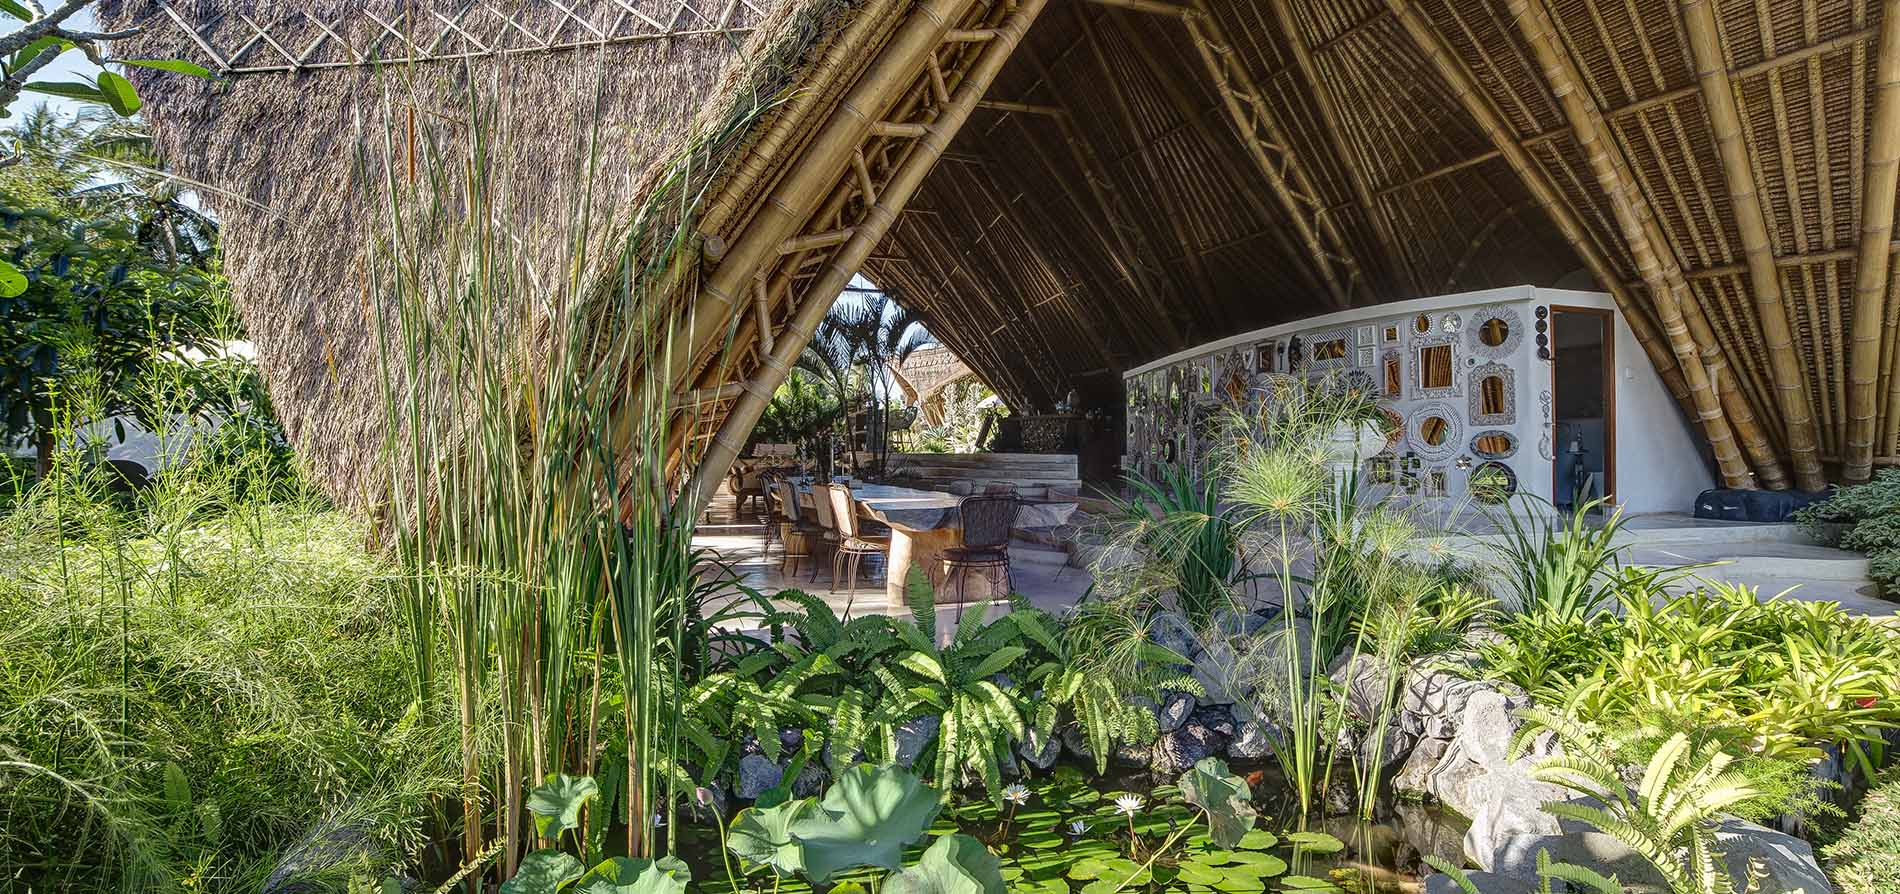 Luxury resort in bali the best boutique hotel in ubud for Ubud boutique accommodation